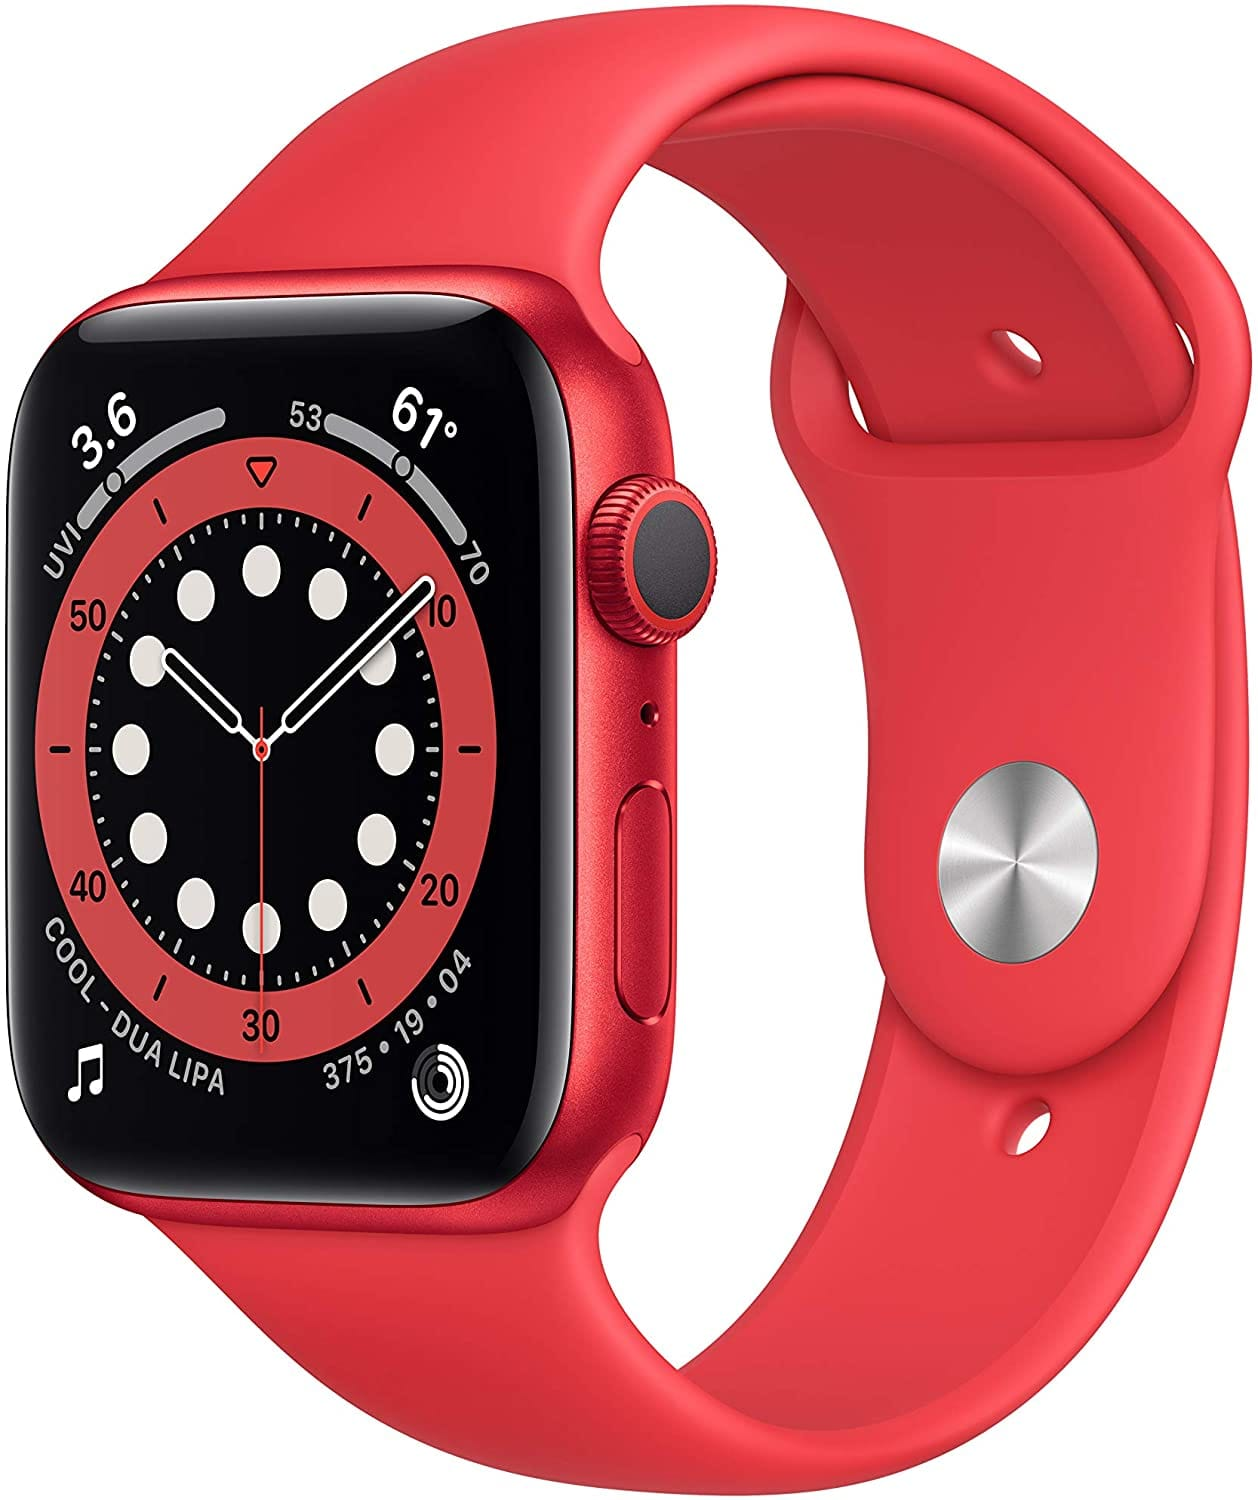 Apple Watch Series 6 44mm - RED $349